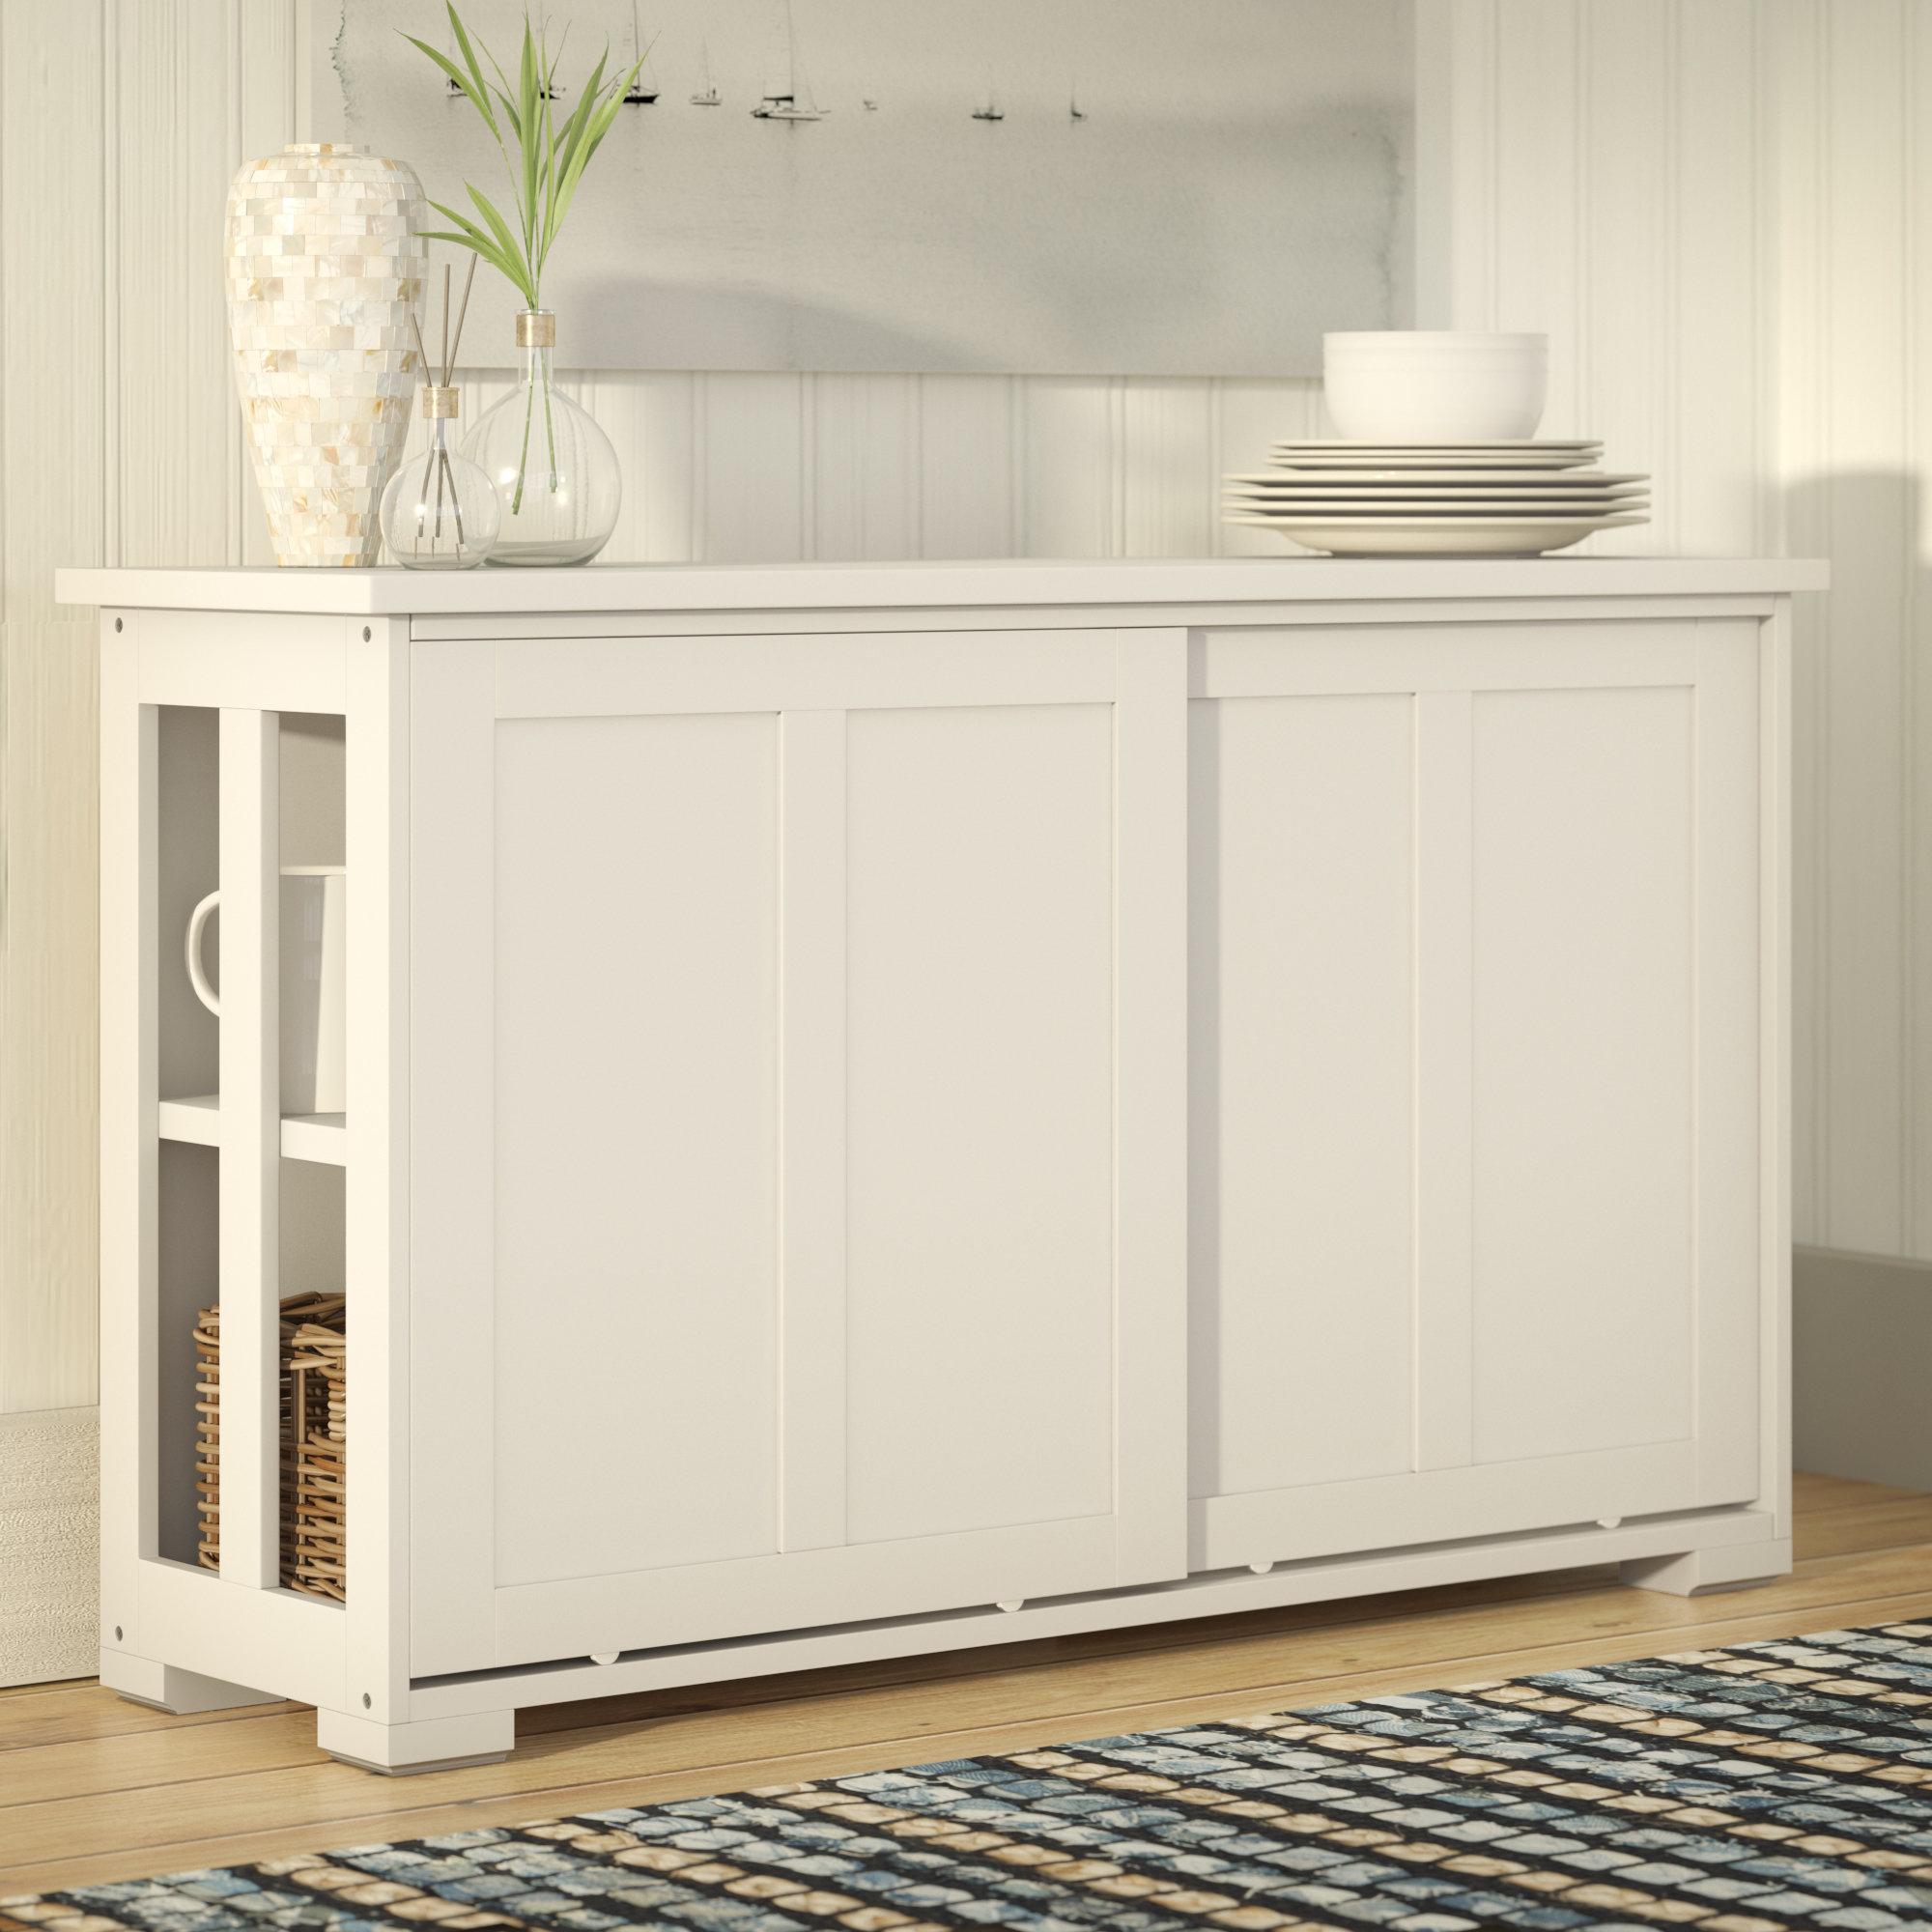 Beachcrest Home South Miami Sideboard & Reviews | Wayfair (#3 of 20)